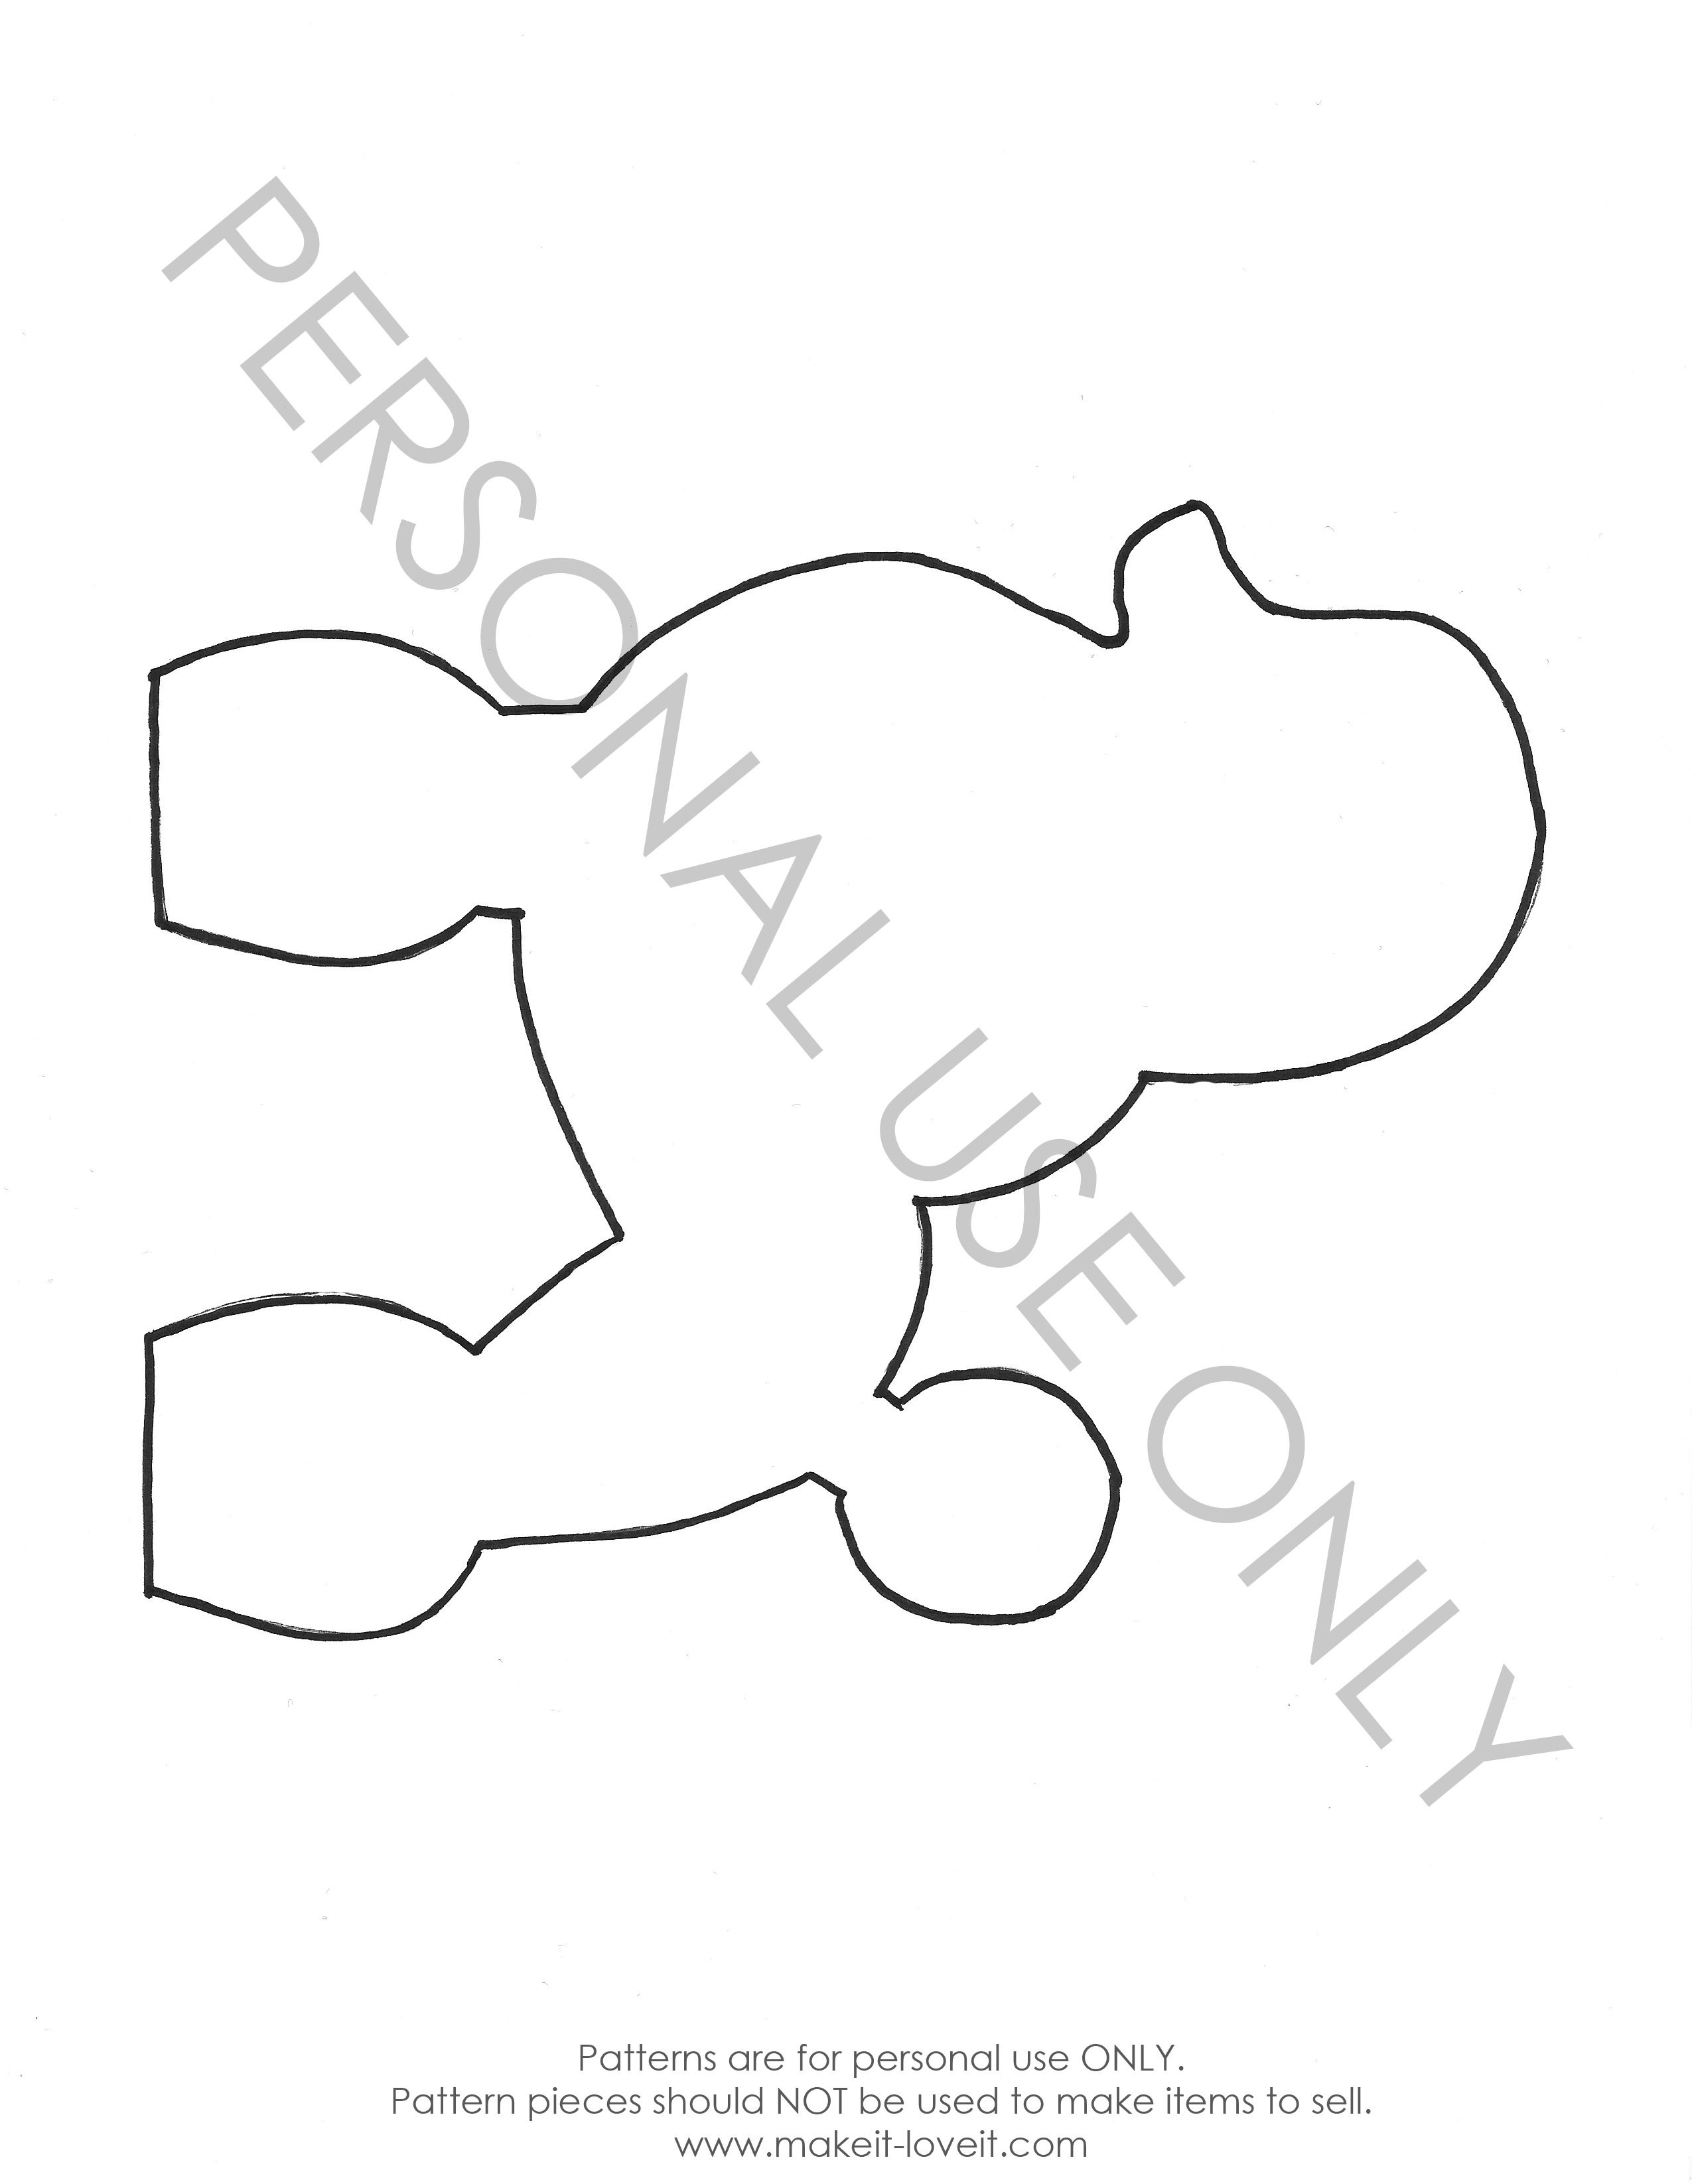 Poodle Outline Printable | Fiscalreform - Free Printable Poodle Template